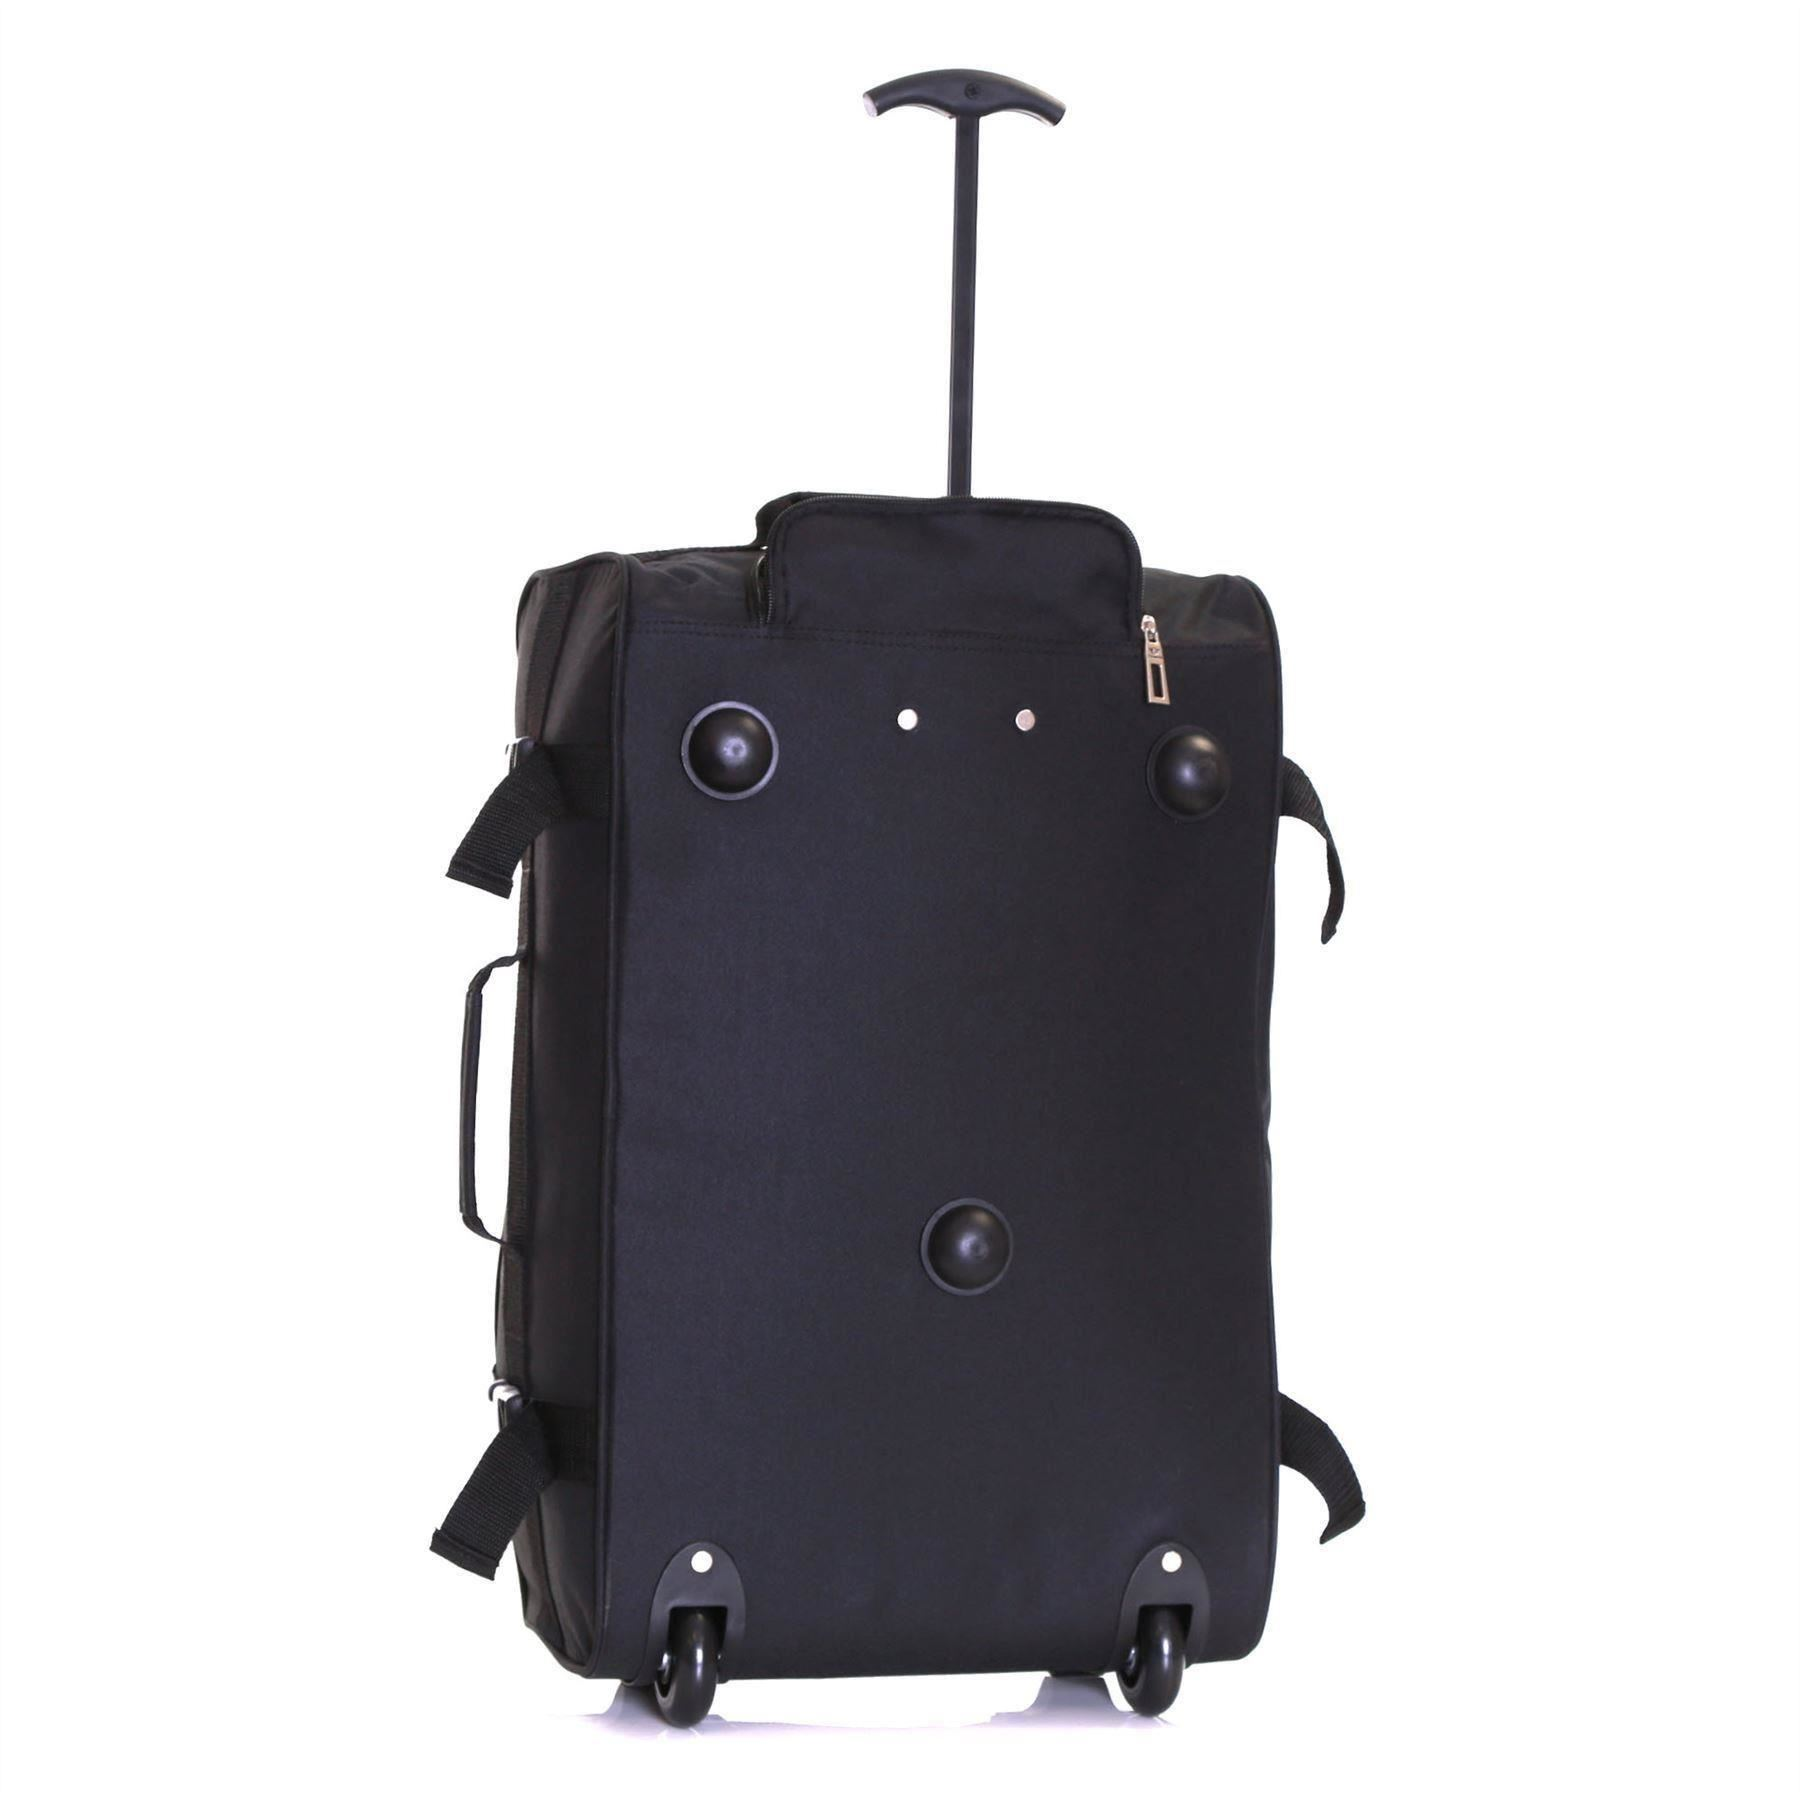 Ryanair-Easyjet-Set-of-2-Cabin-Approved-Hand-Trolley-Suitcases-Luggage-Case-Bags thumbnail 7